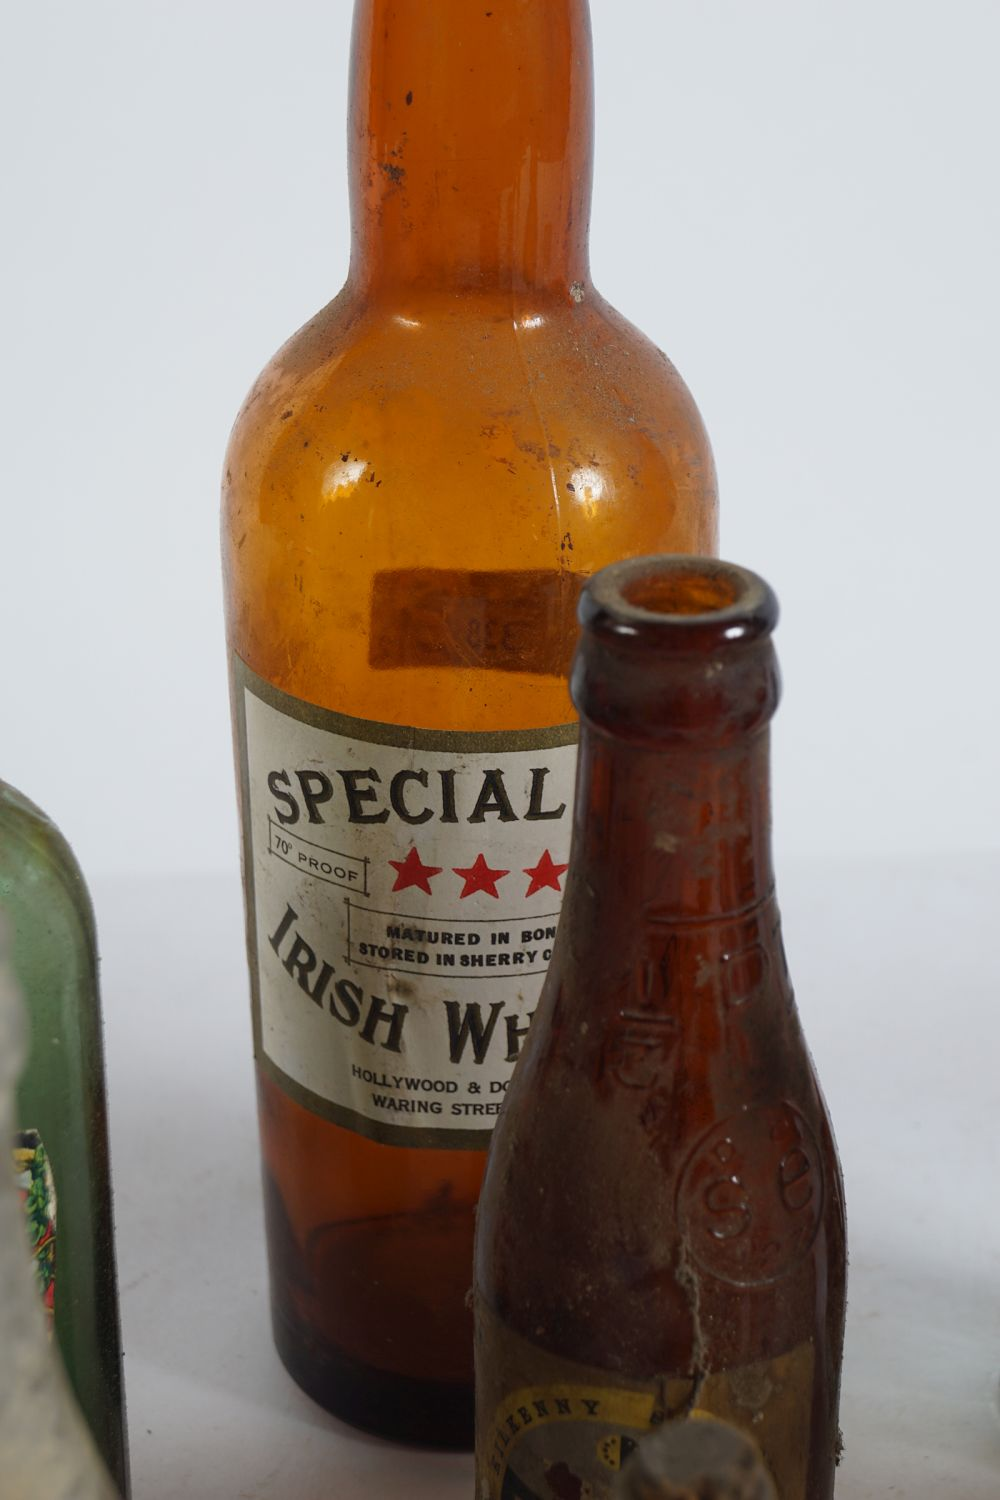 LOT OF 16 OLD WHISKEY AND BEER BOTTLES - Image 4 of 7